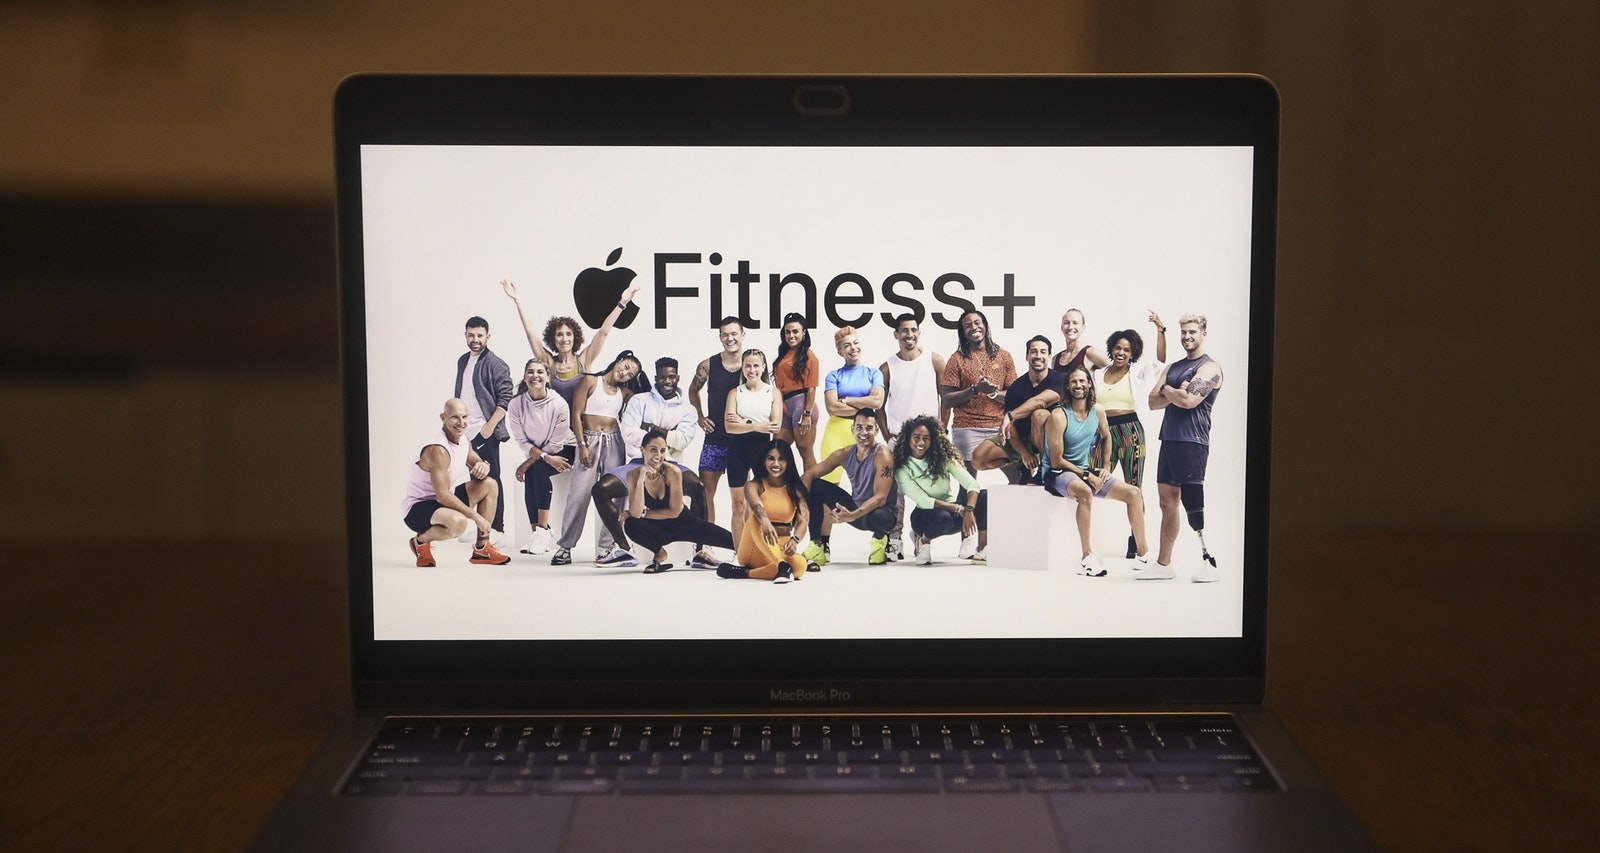 A graphic for Apple's new Fitness+ service unveiled today. Photo by Bloomberg.